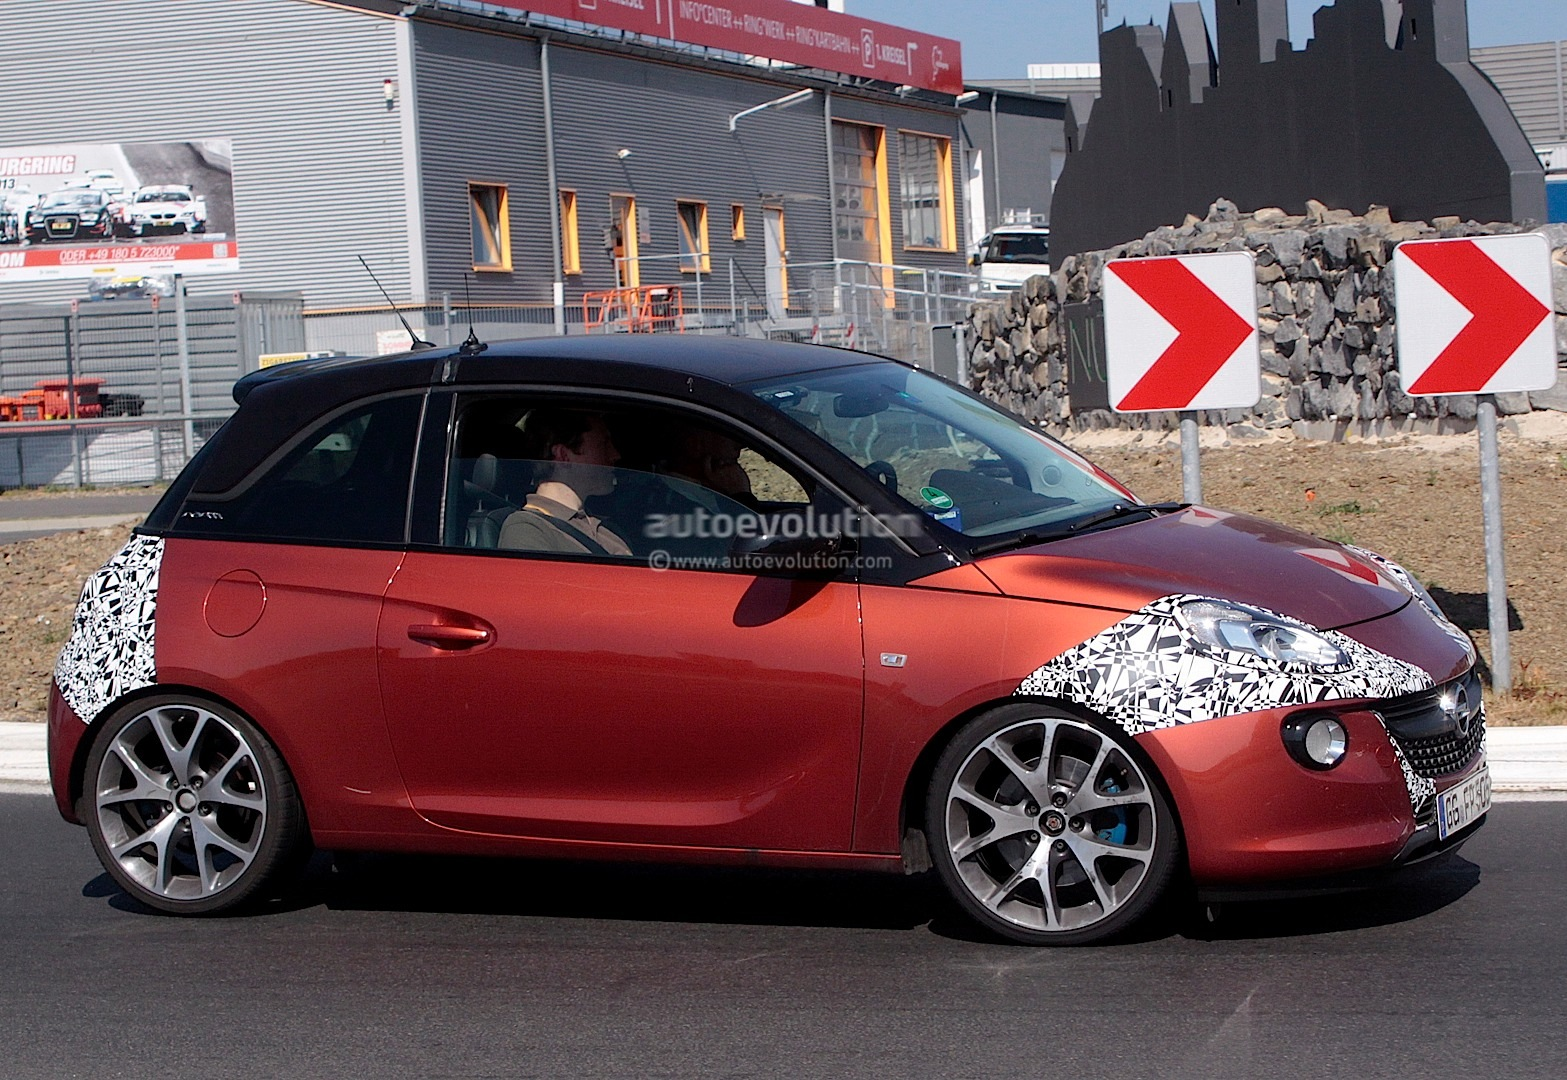 spyshots opel adam opc or new sidi turbo autoevolution. Black Bedroom Furniture Sets. Home Design Ideas